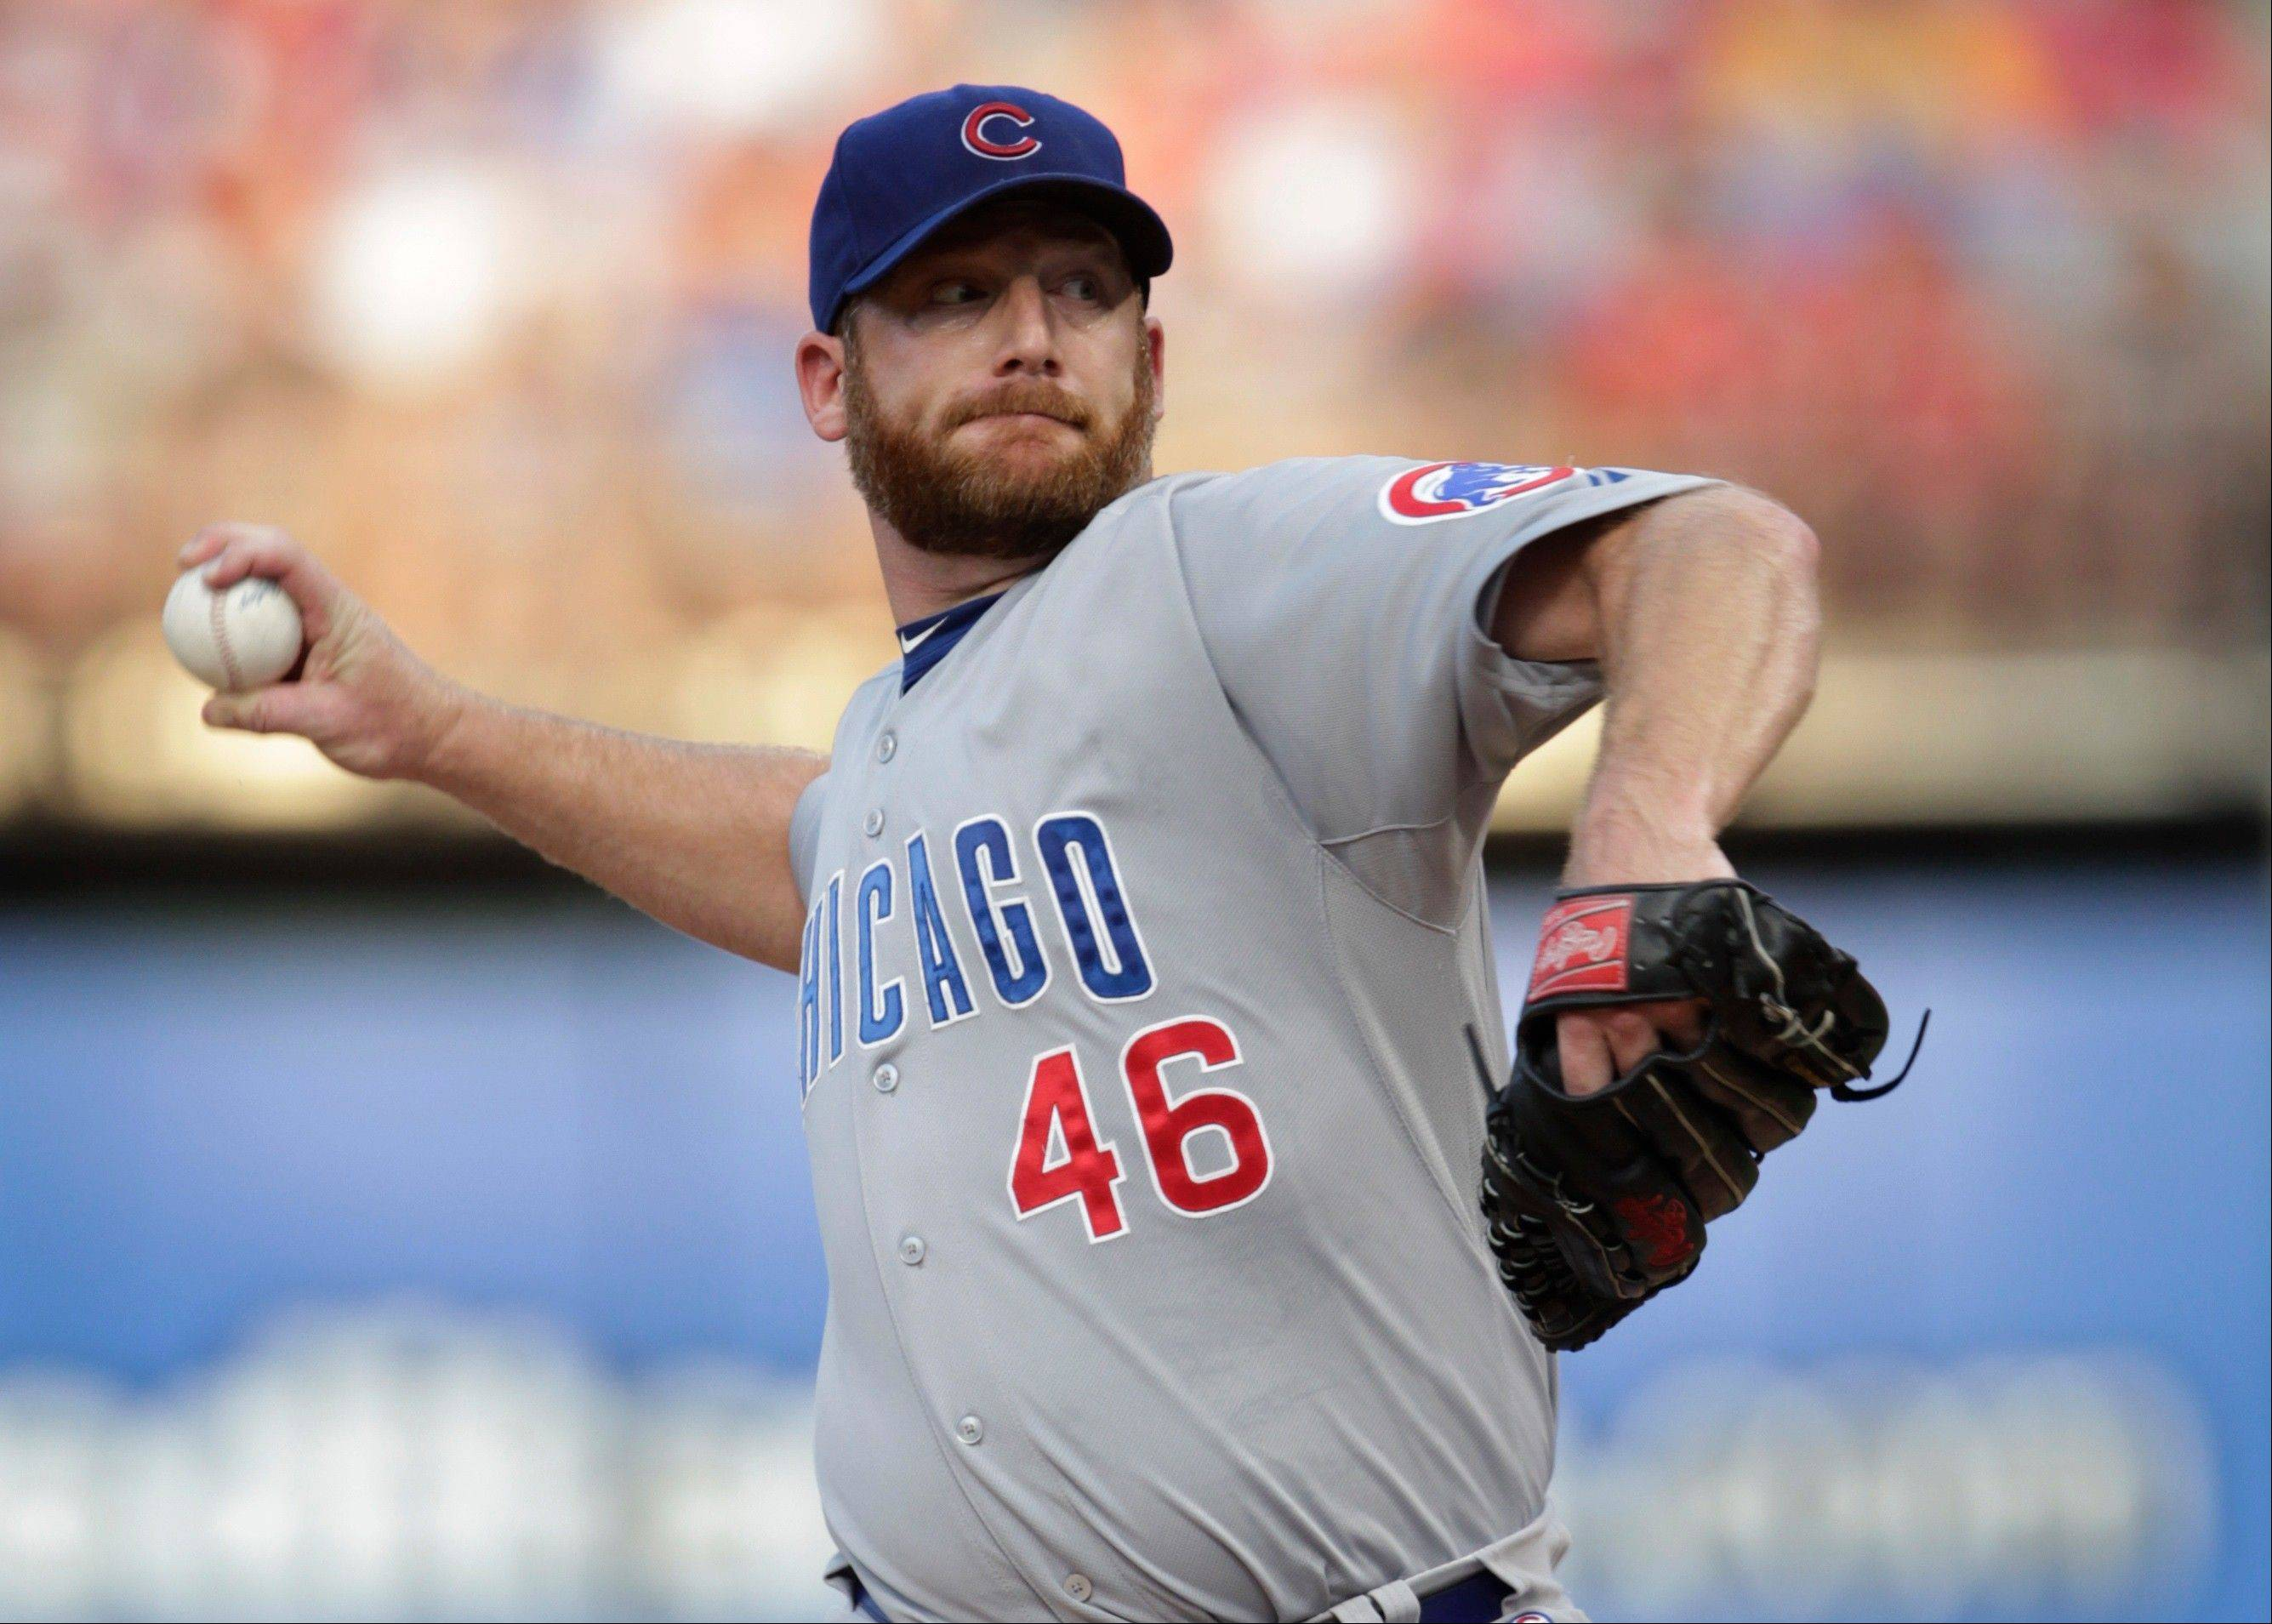 Cubs starting pitcher Ryan Dempster says there�s still time to consider any trade possibilities.